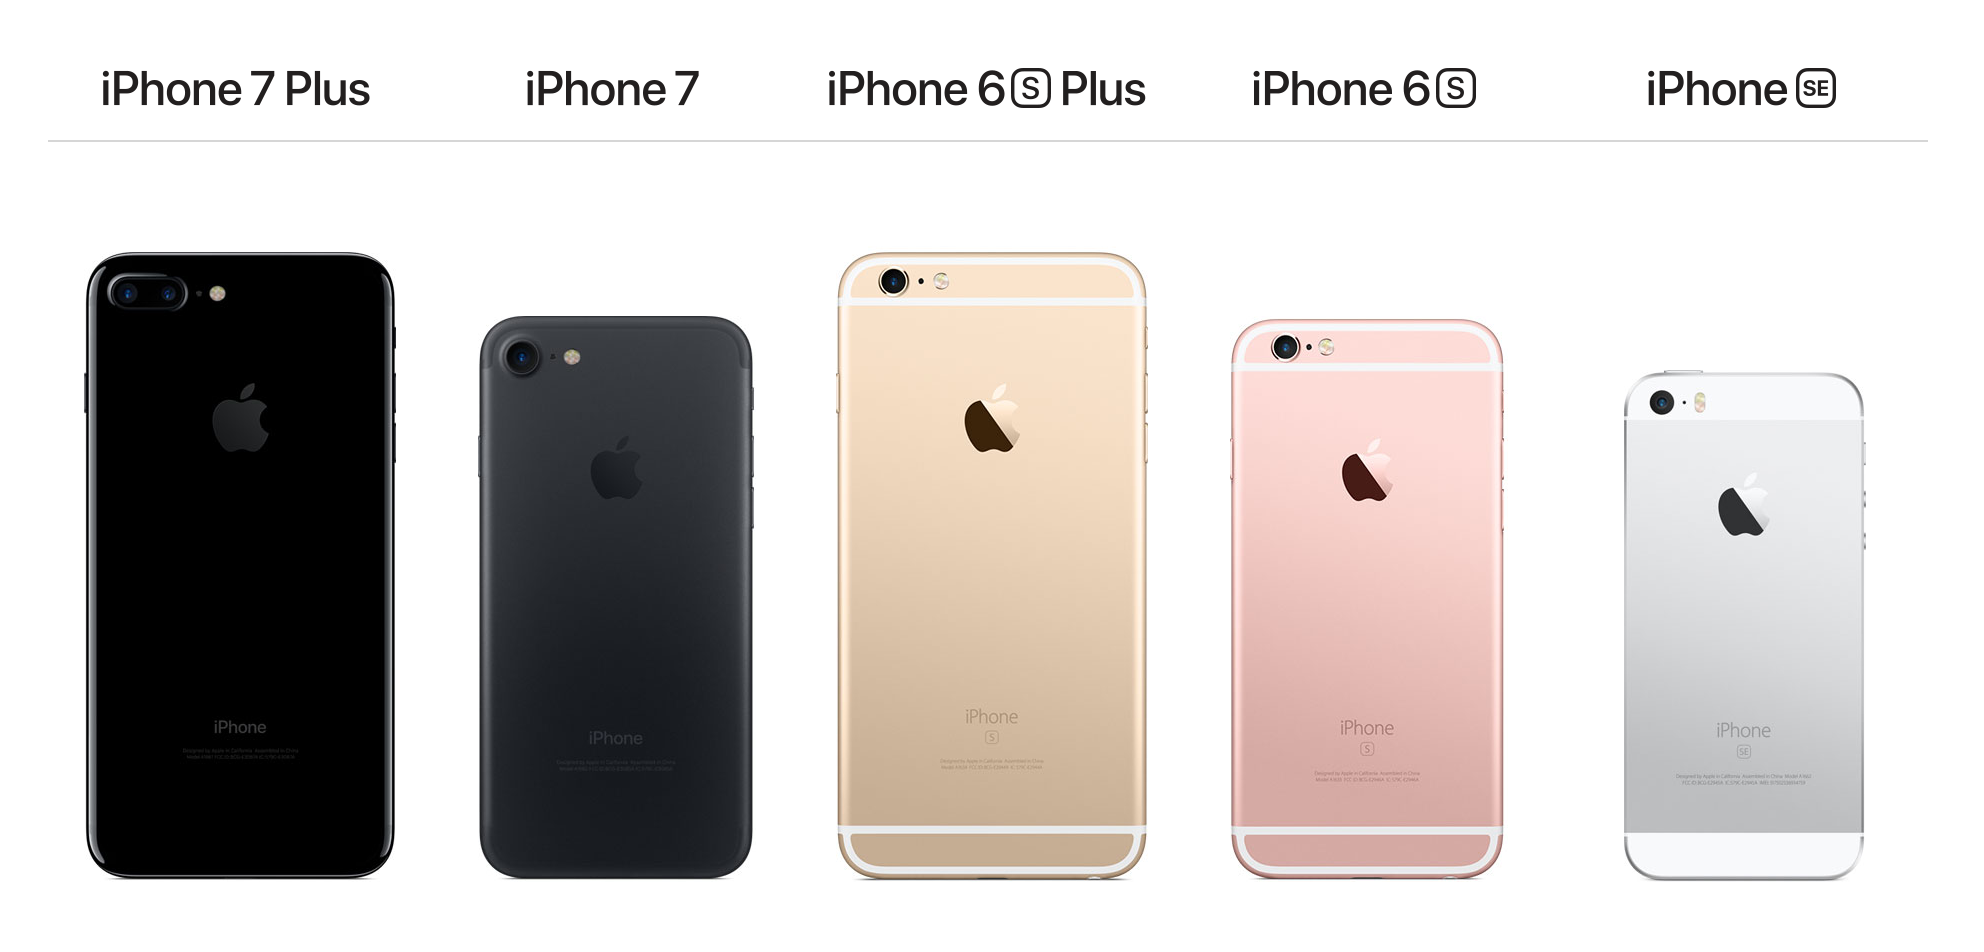 iphone 6 or 7 the iphone 7 the iphone 7 plus the iphone 6 and the 15008